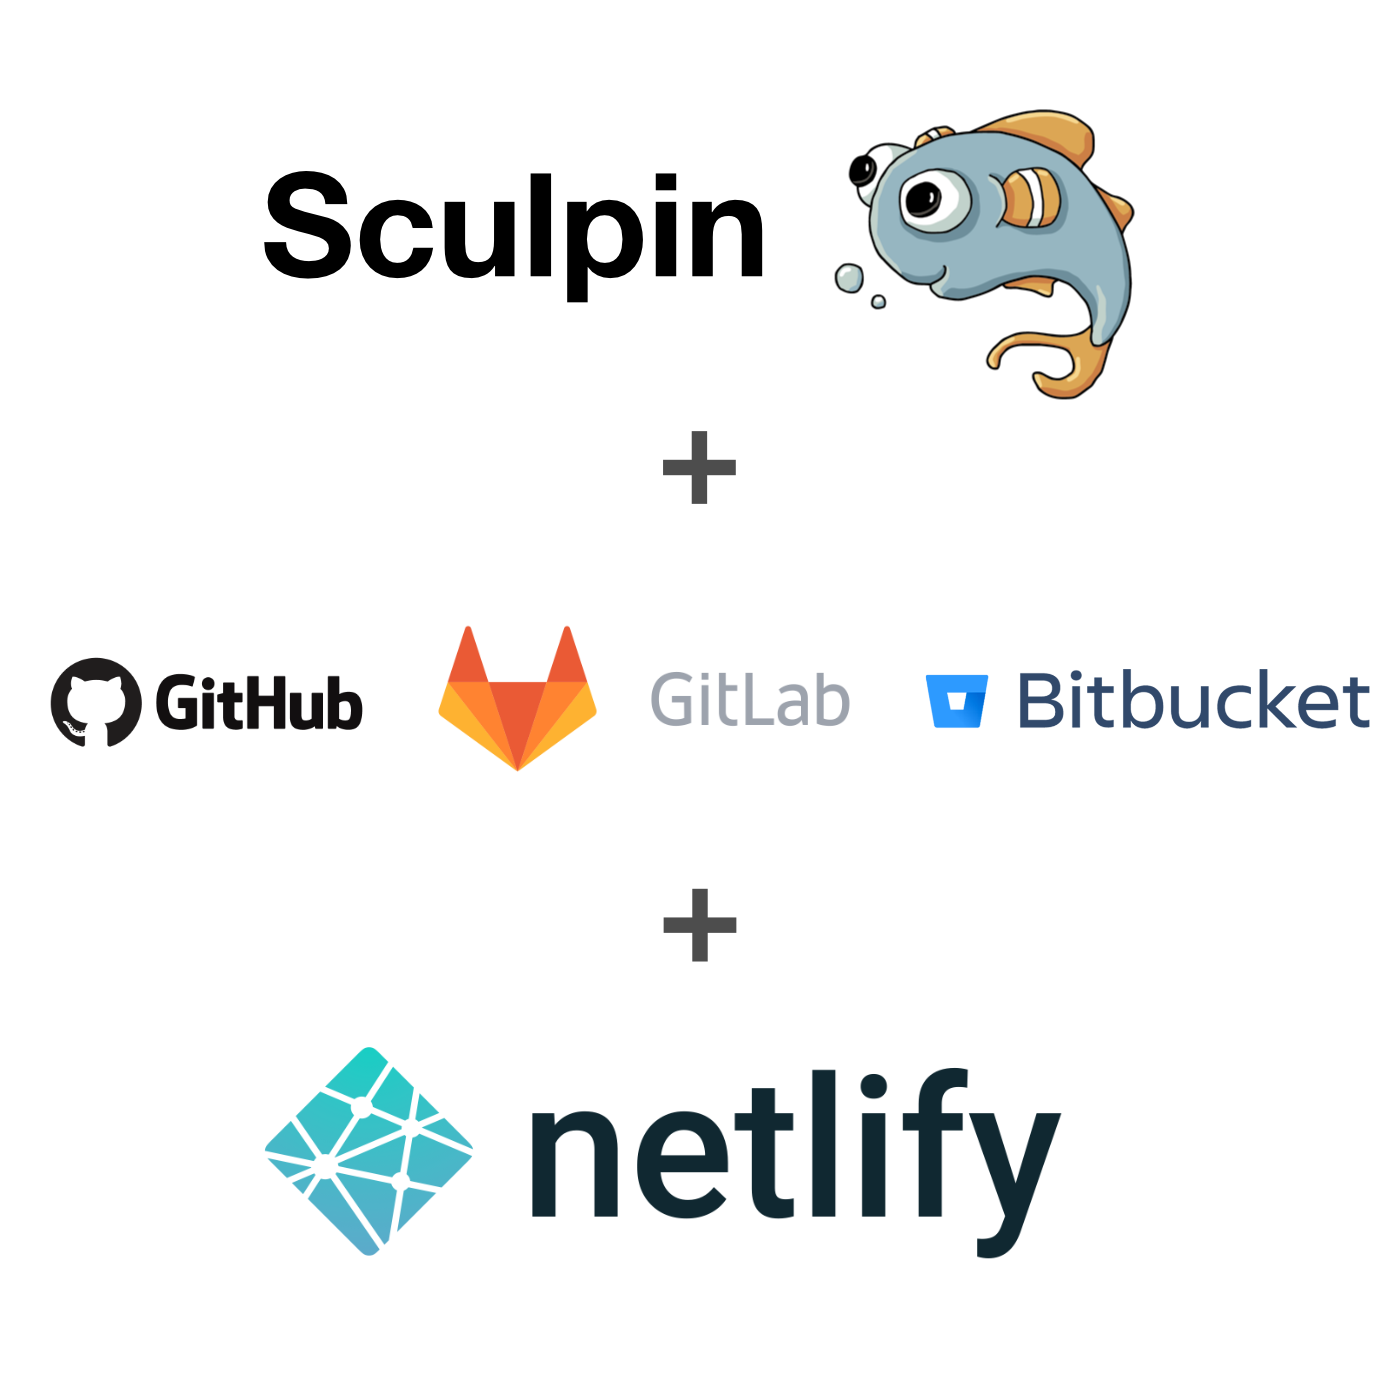 A image showing: Sculpin + (GitHub OR Gitlab OR Bitbucket) + Netlify.